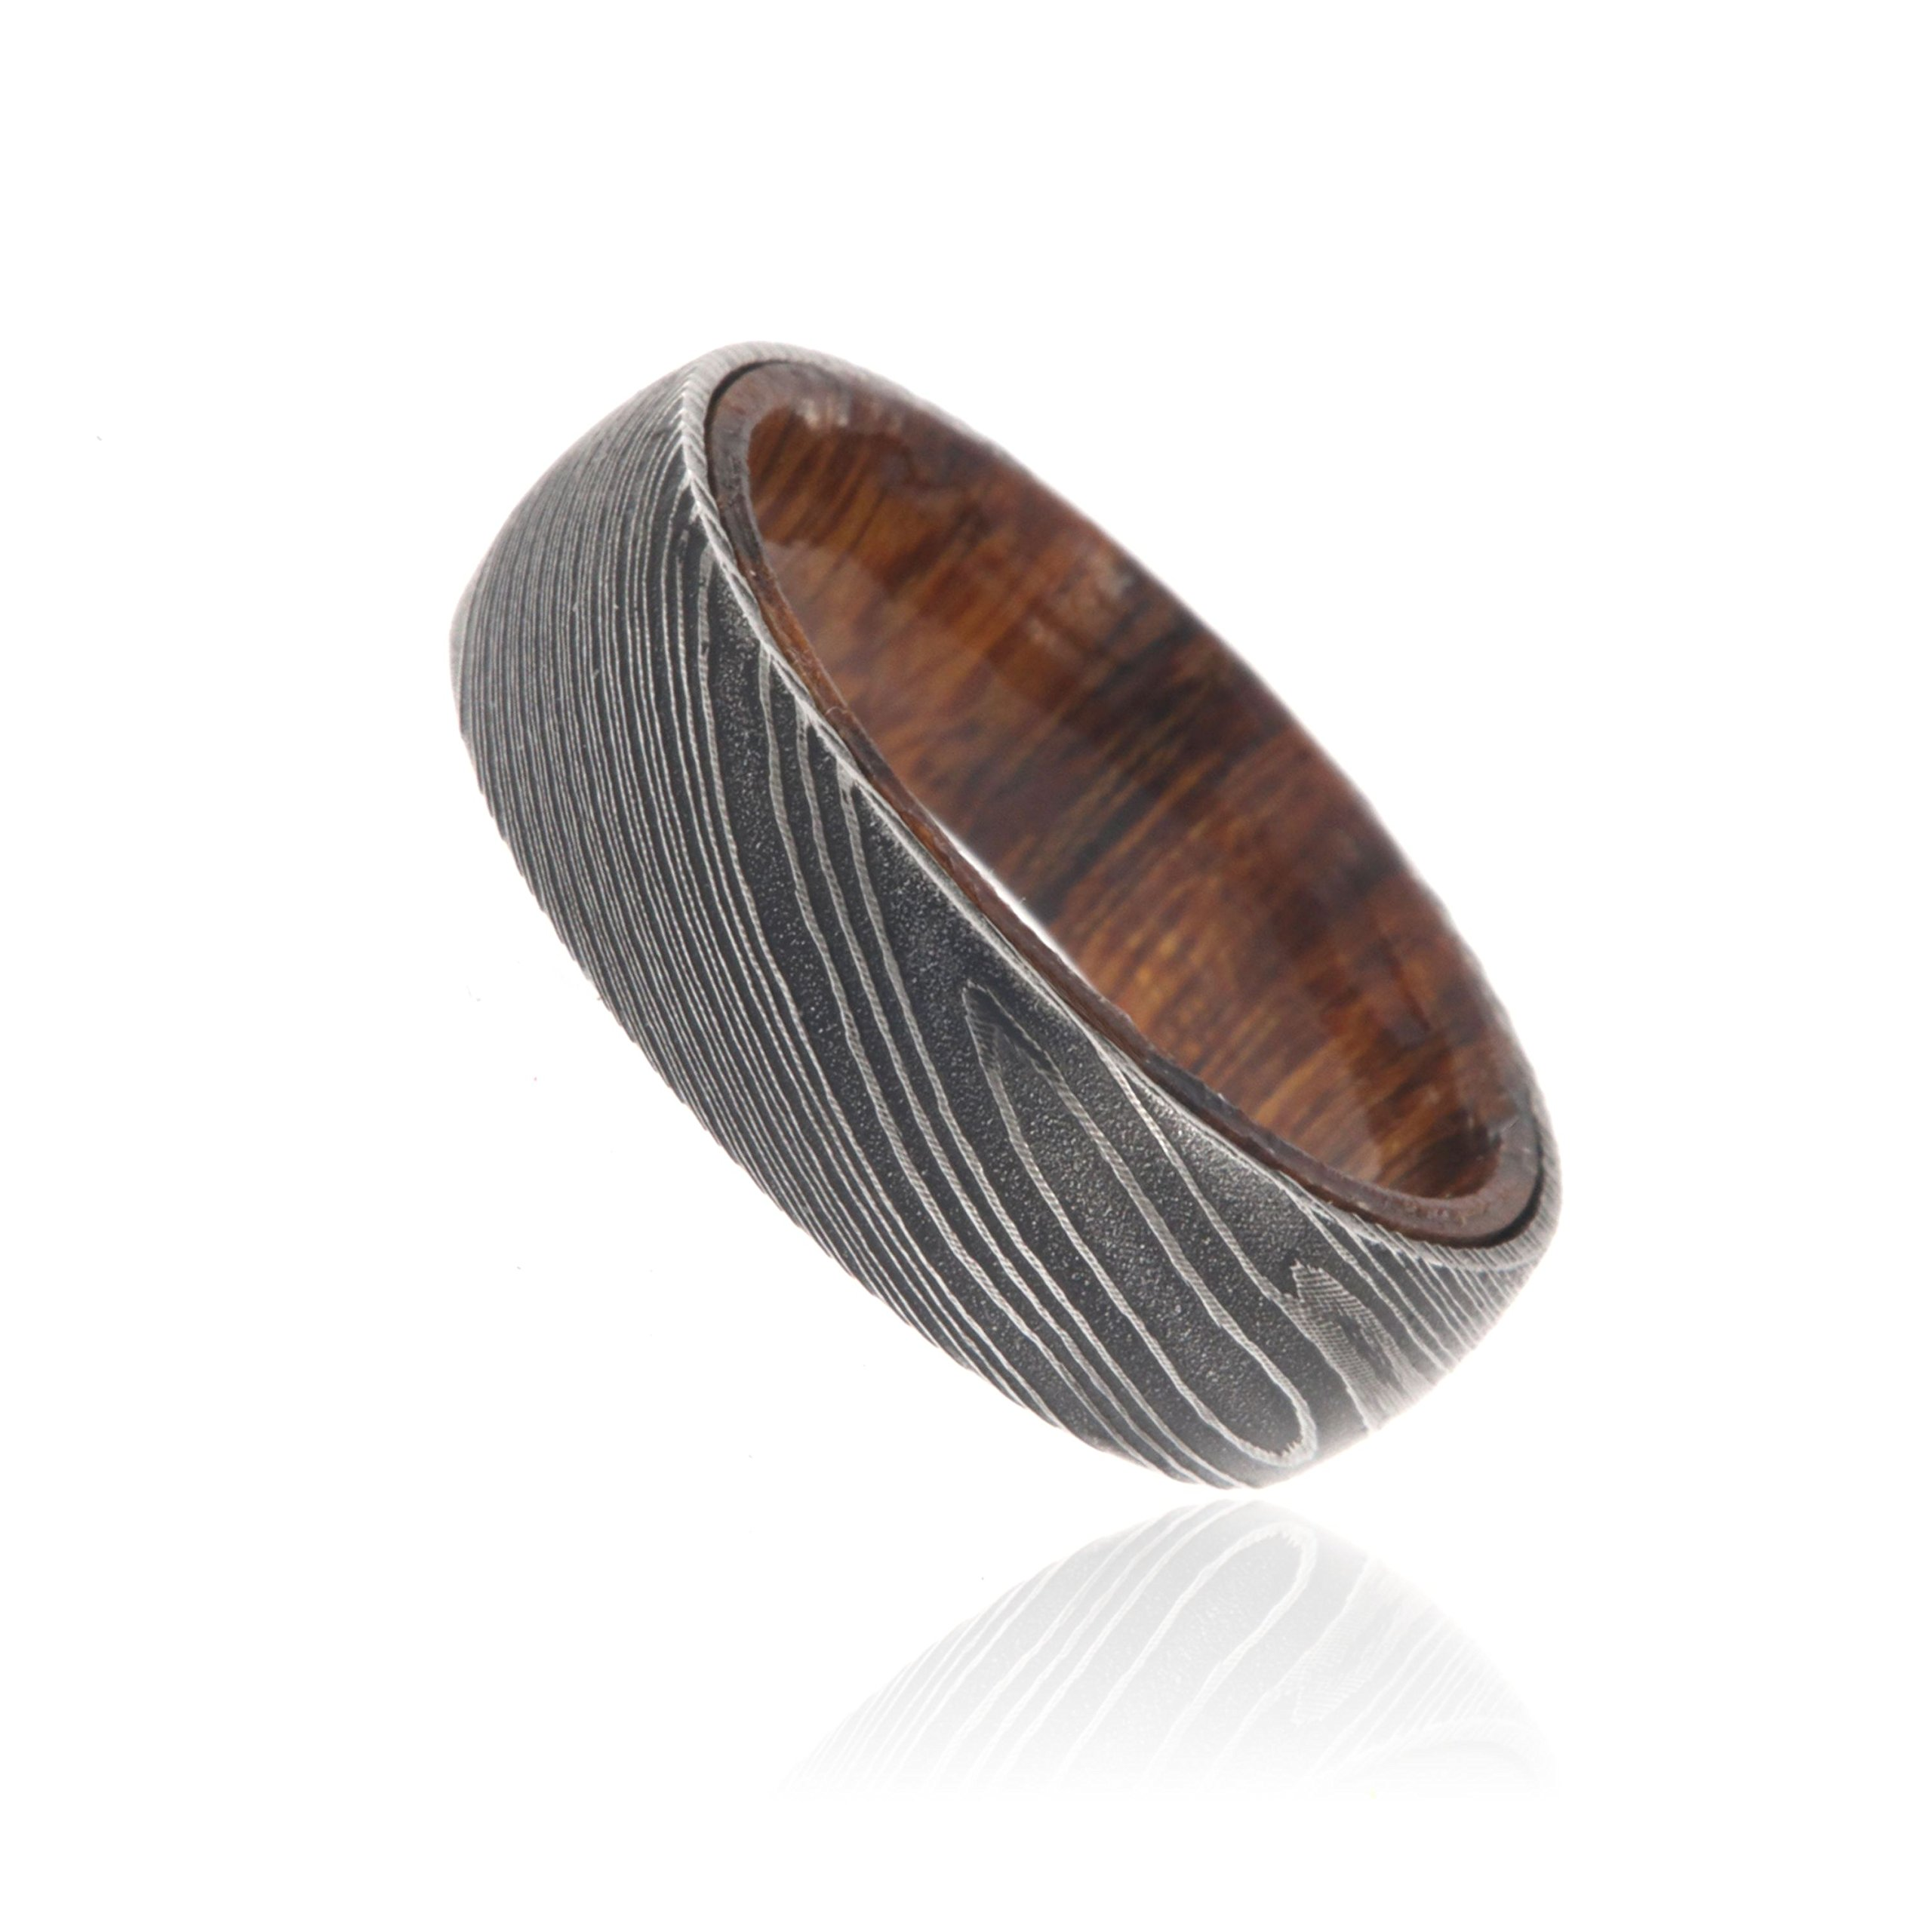 7mm Wide Damascus Steel Ring Etched Damascus Steel Bands Wedding Rings with a Iron Wood Sleeve